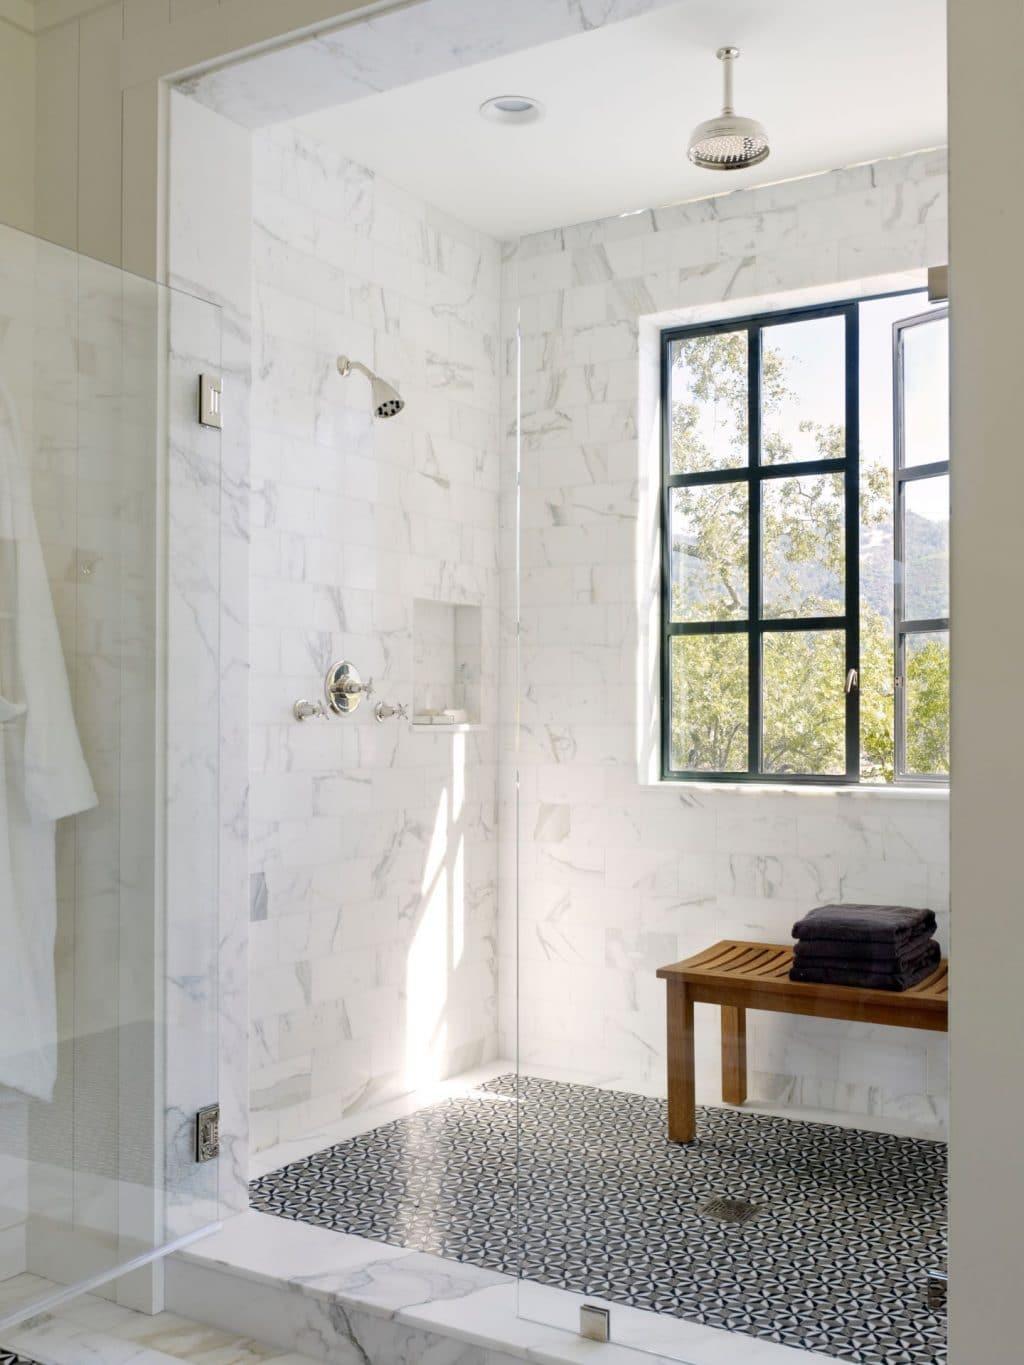 Would You Rather Tub Vs Shower Vs Tub And Shower Chris